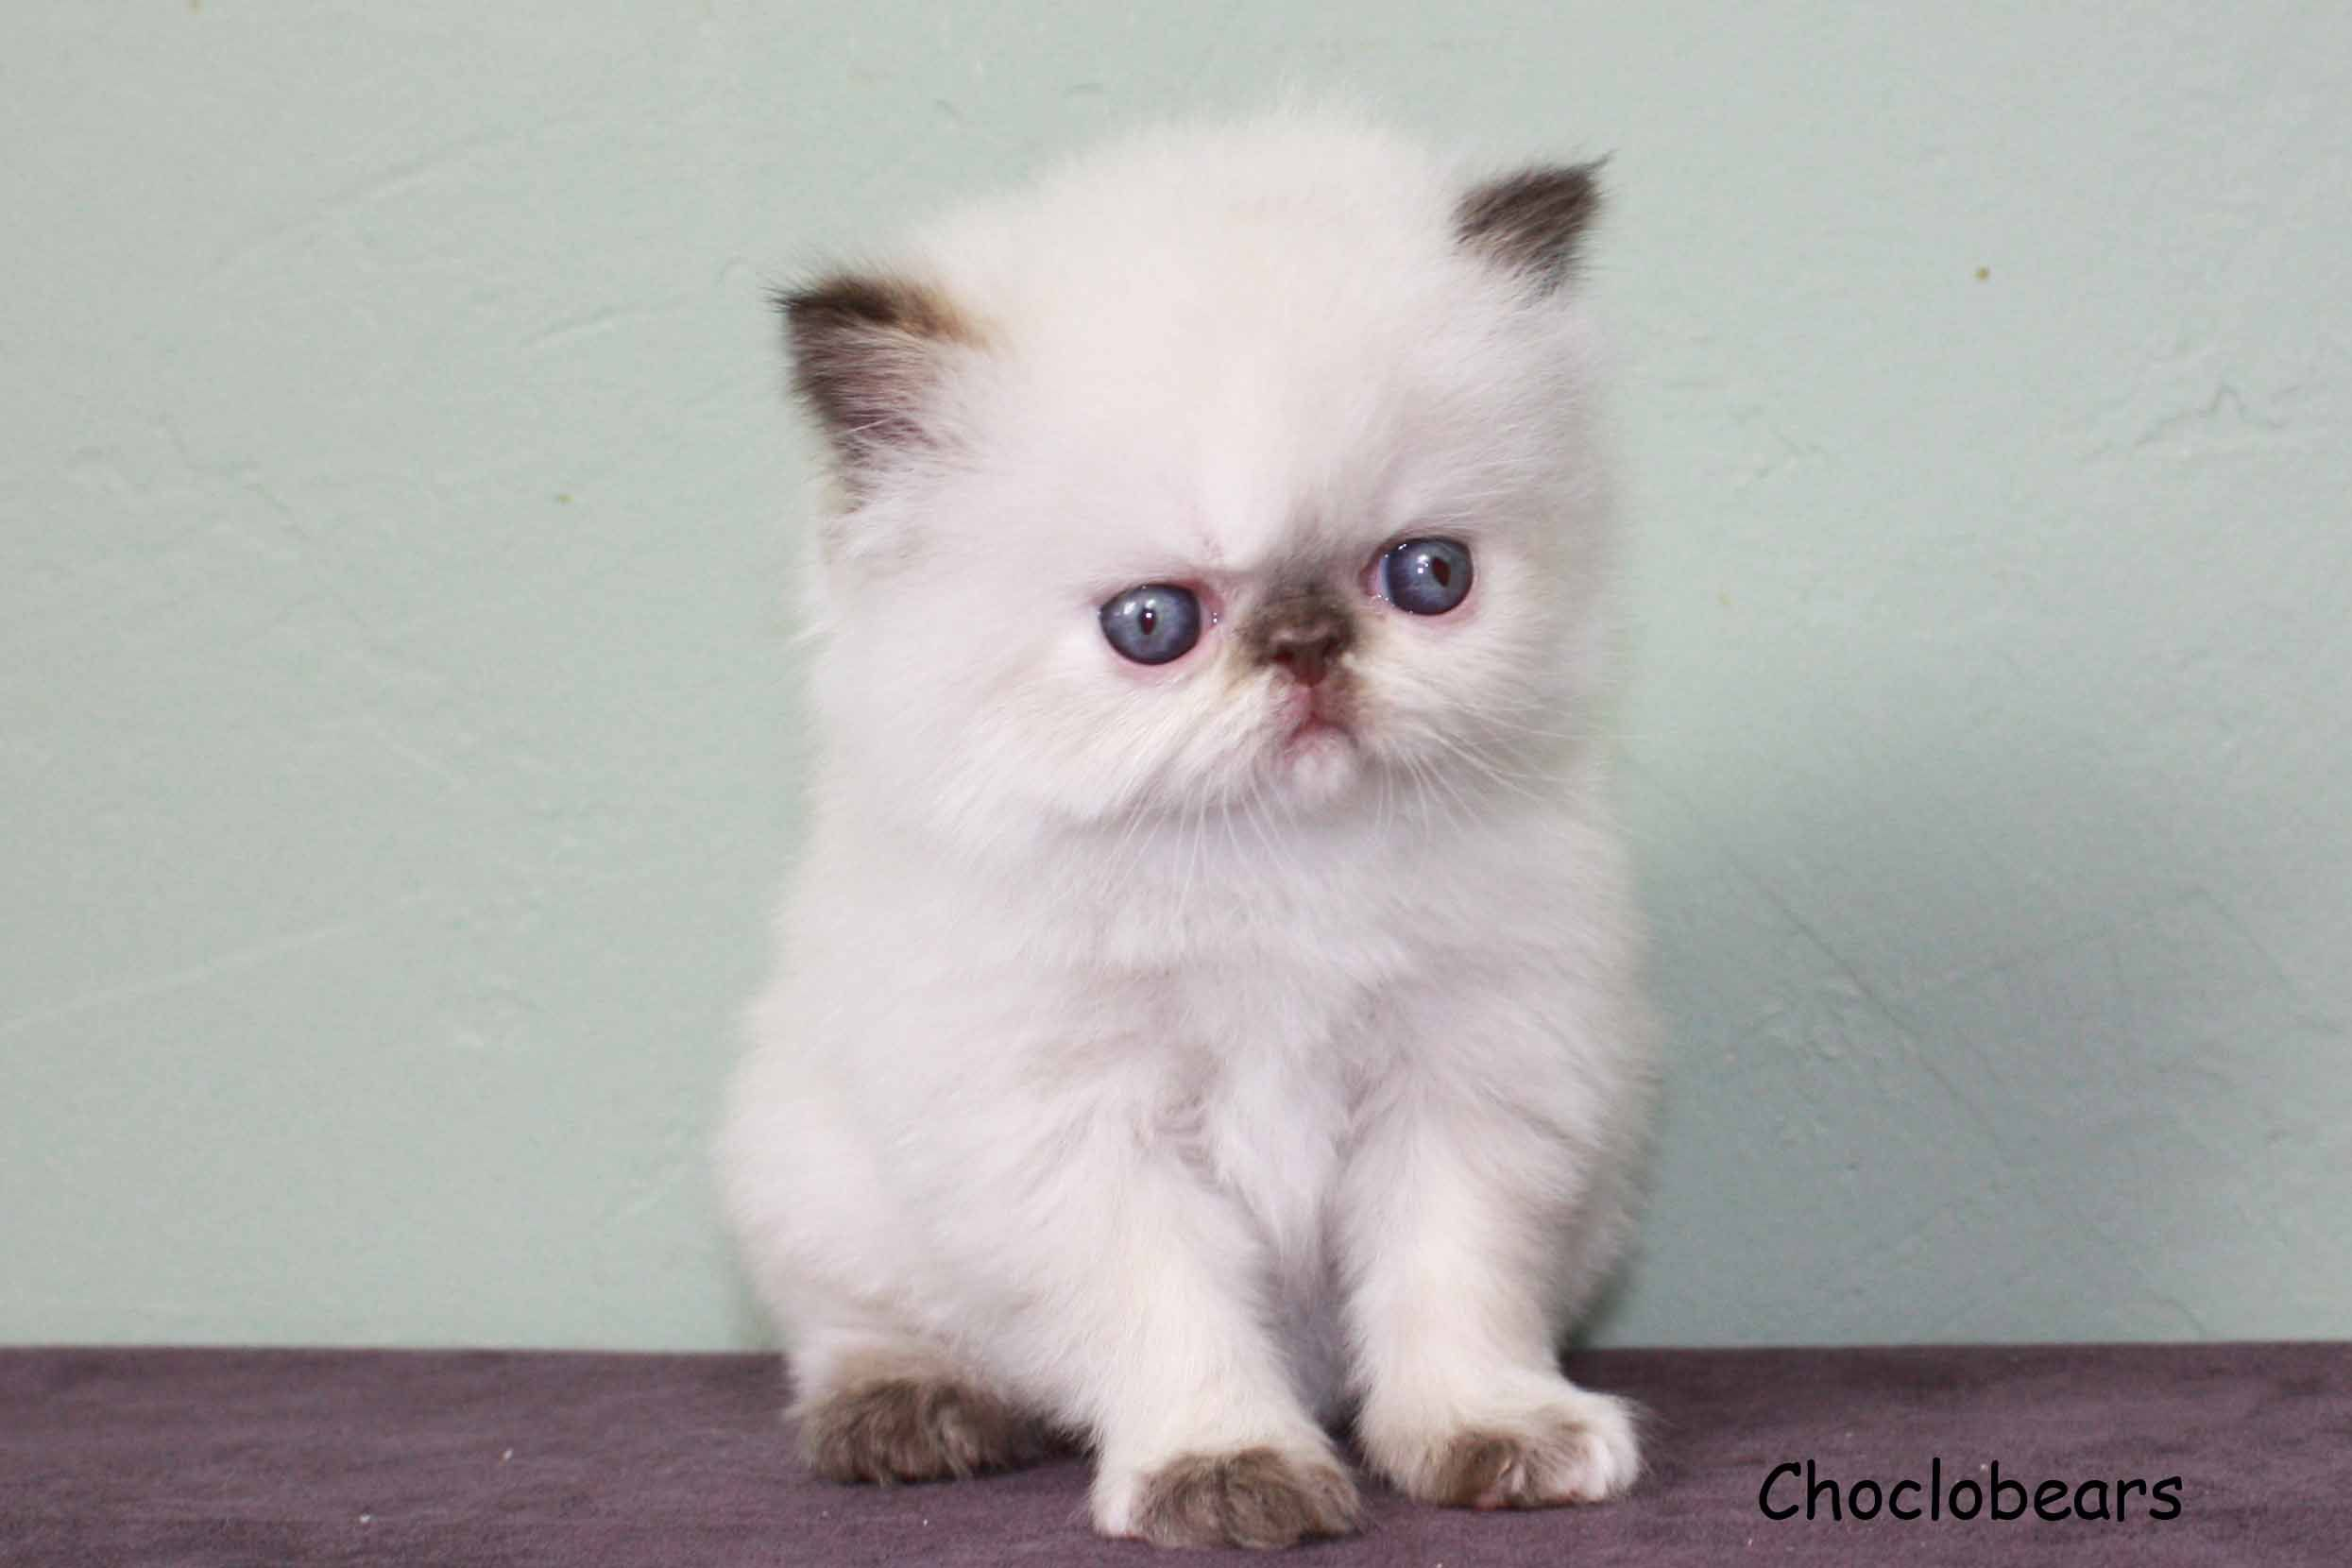 Choclobears Cattery Chocolate Tortie Point Himalayan Kitten 4 Weeks Old Himalayan Kitten Cute Cats Beautiful Cats